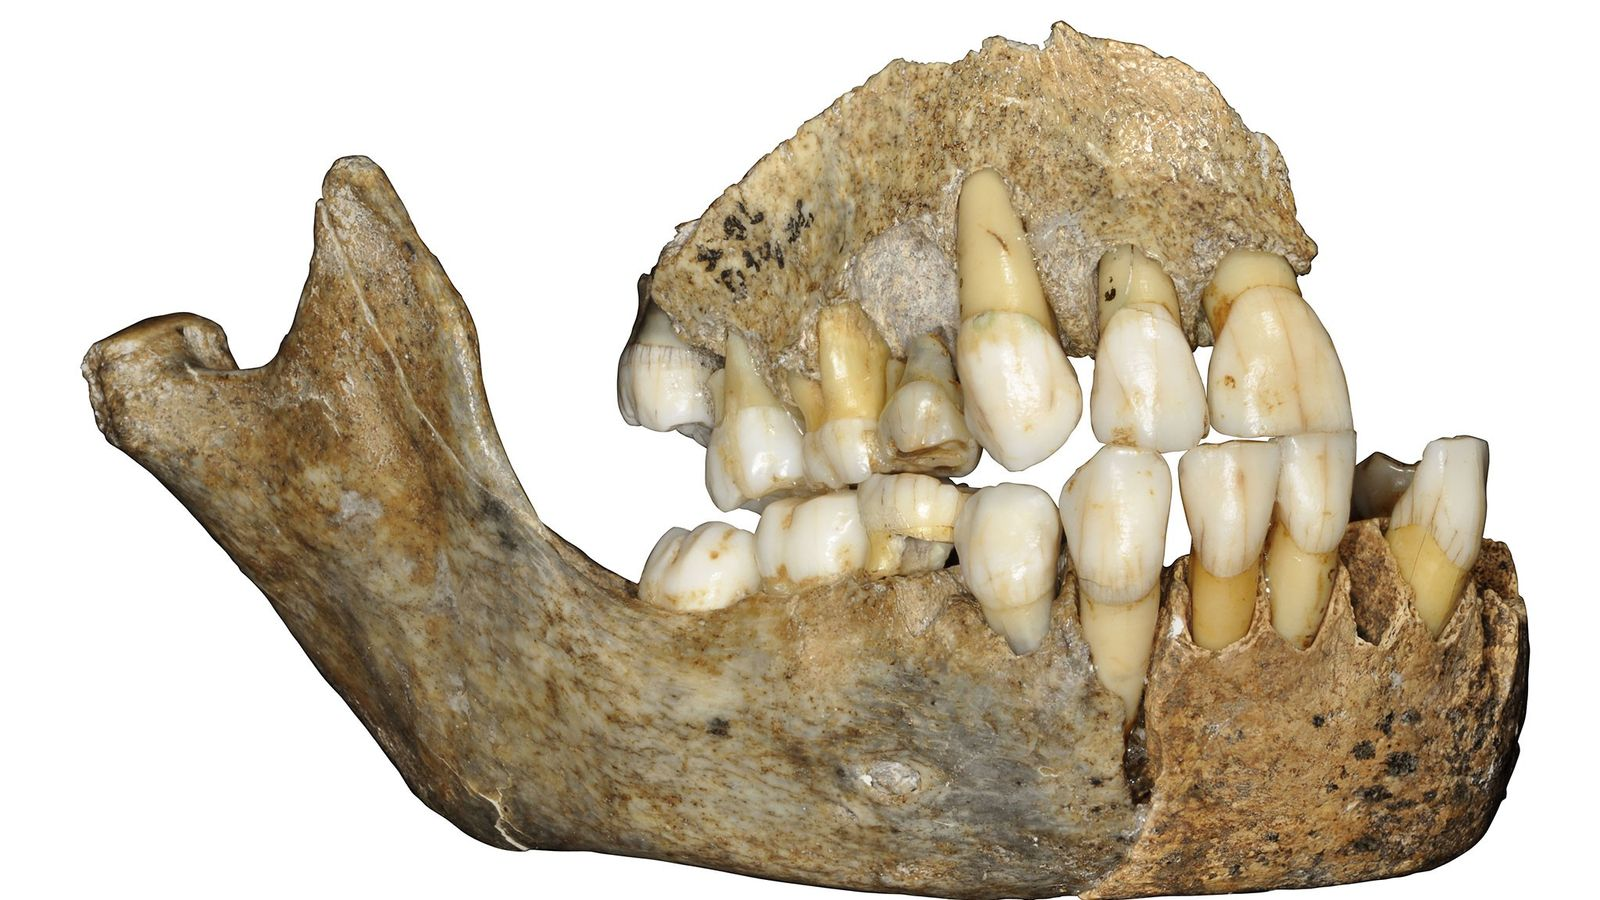 DNA pulled from this Neanderthal jawbone found in Belgium revealed fresh details about when these ancient ...